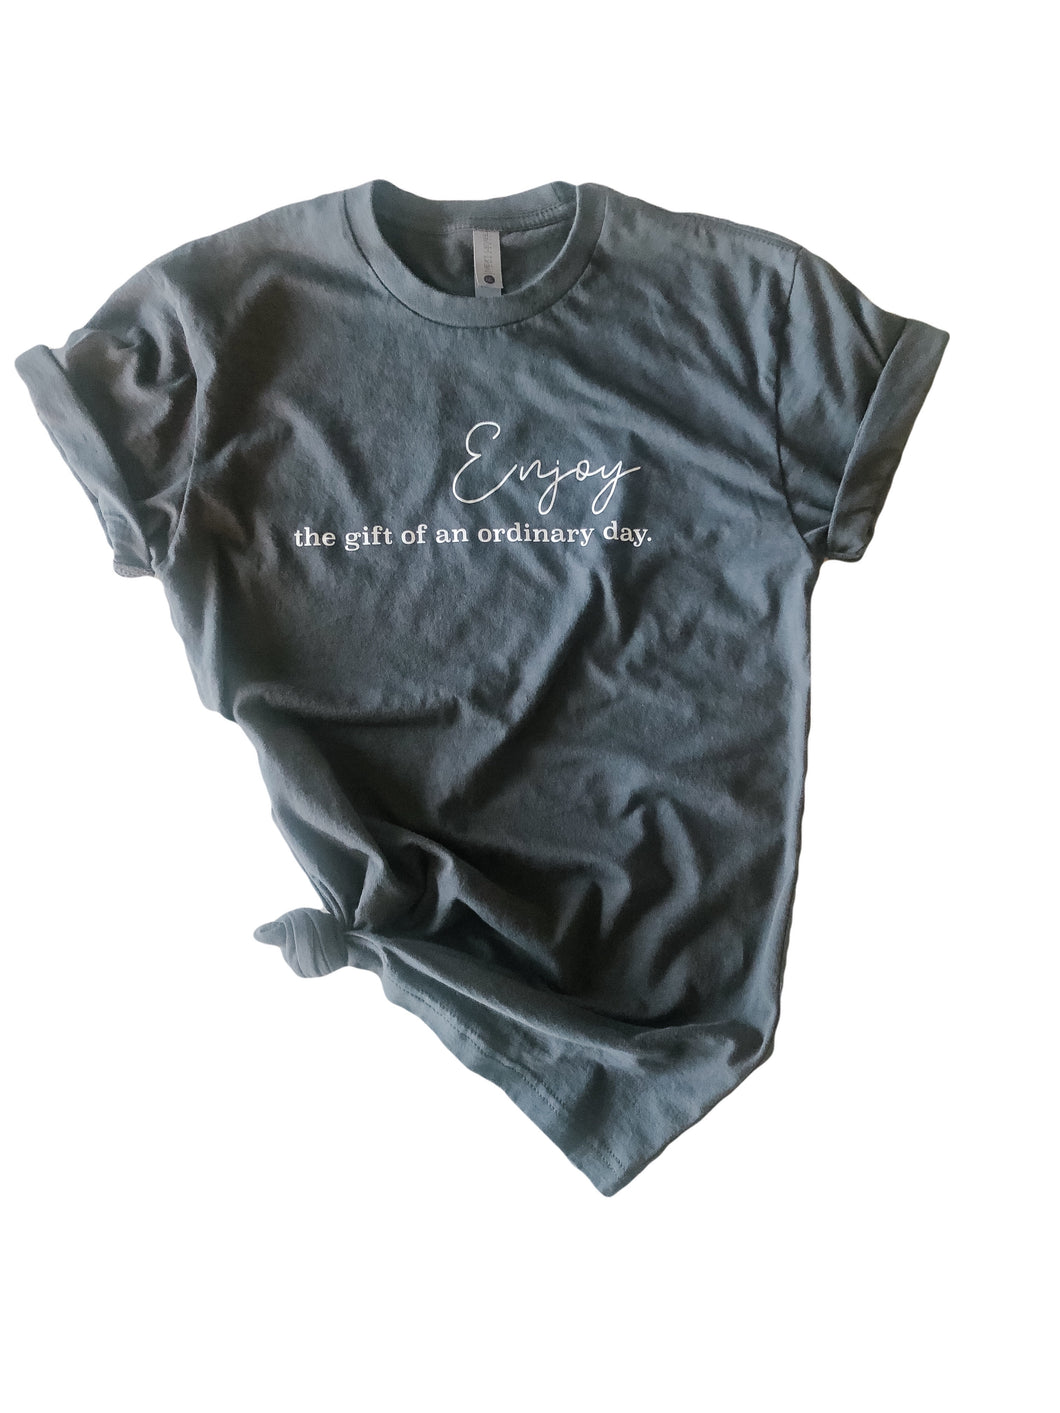 Ladies ordinary day t-shirt in slate grey